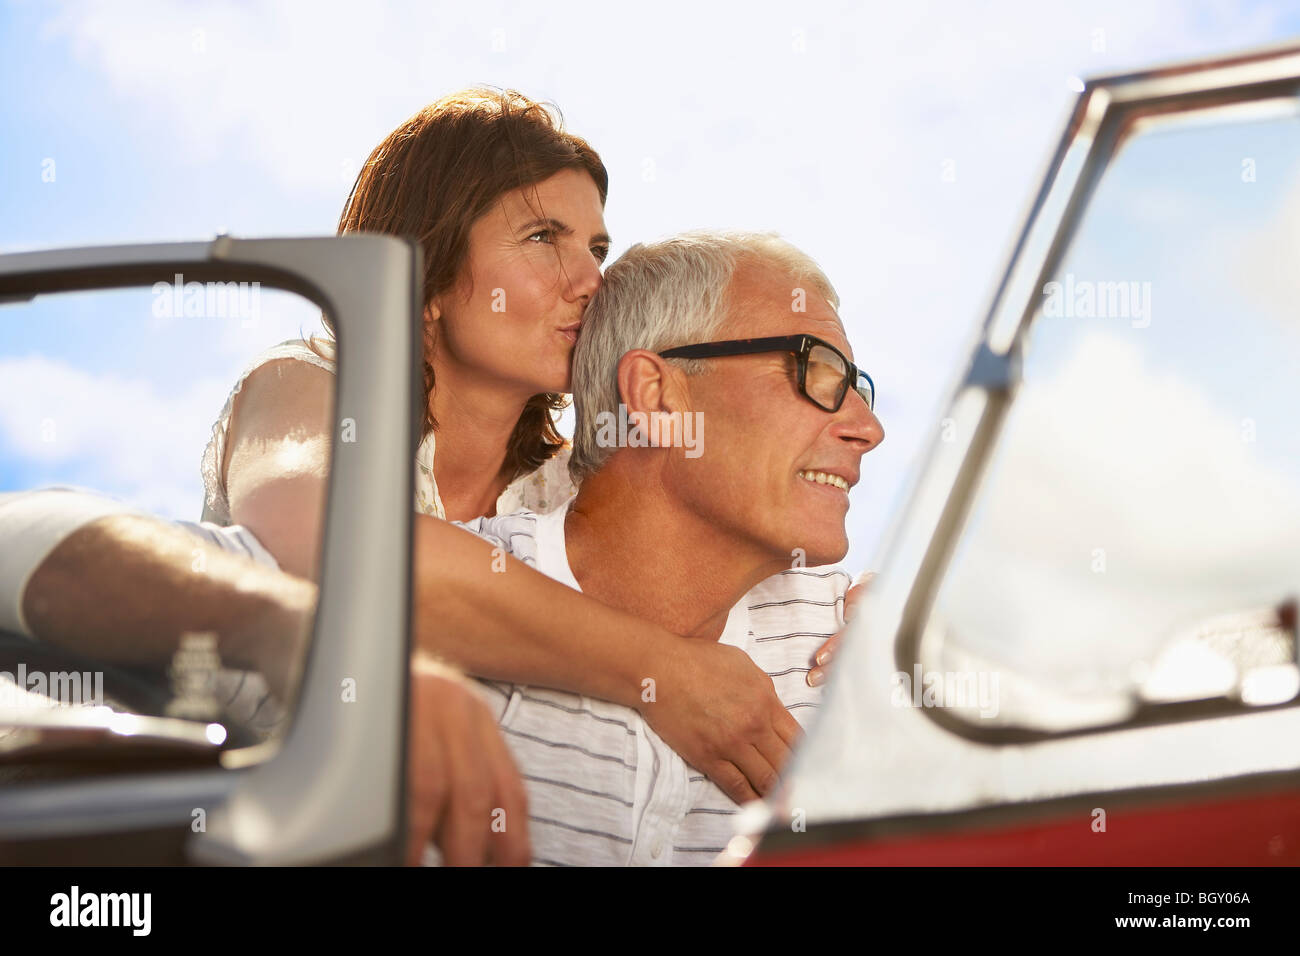 Senior couple embracing in sports car Photo Stock